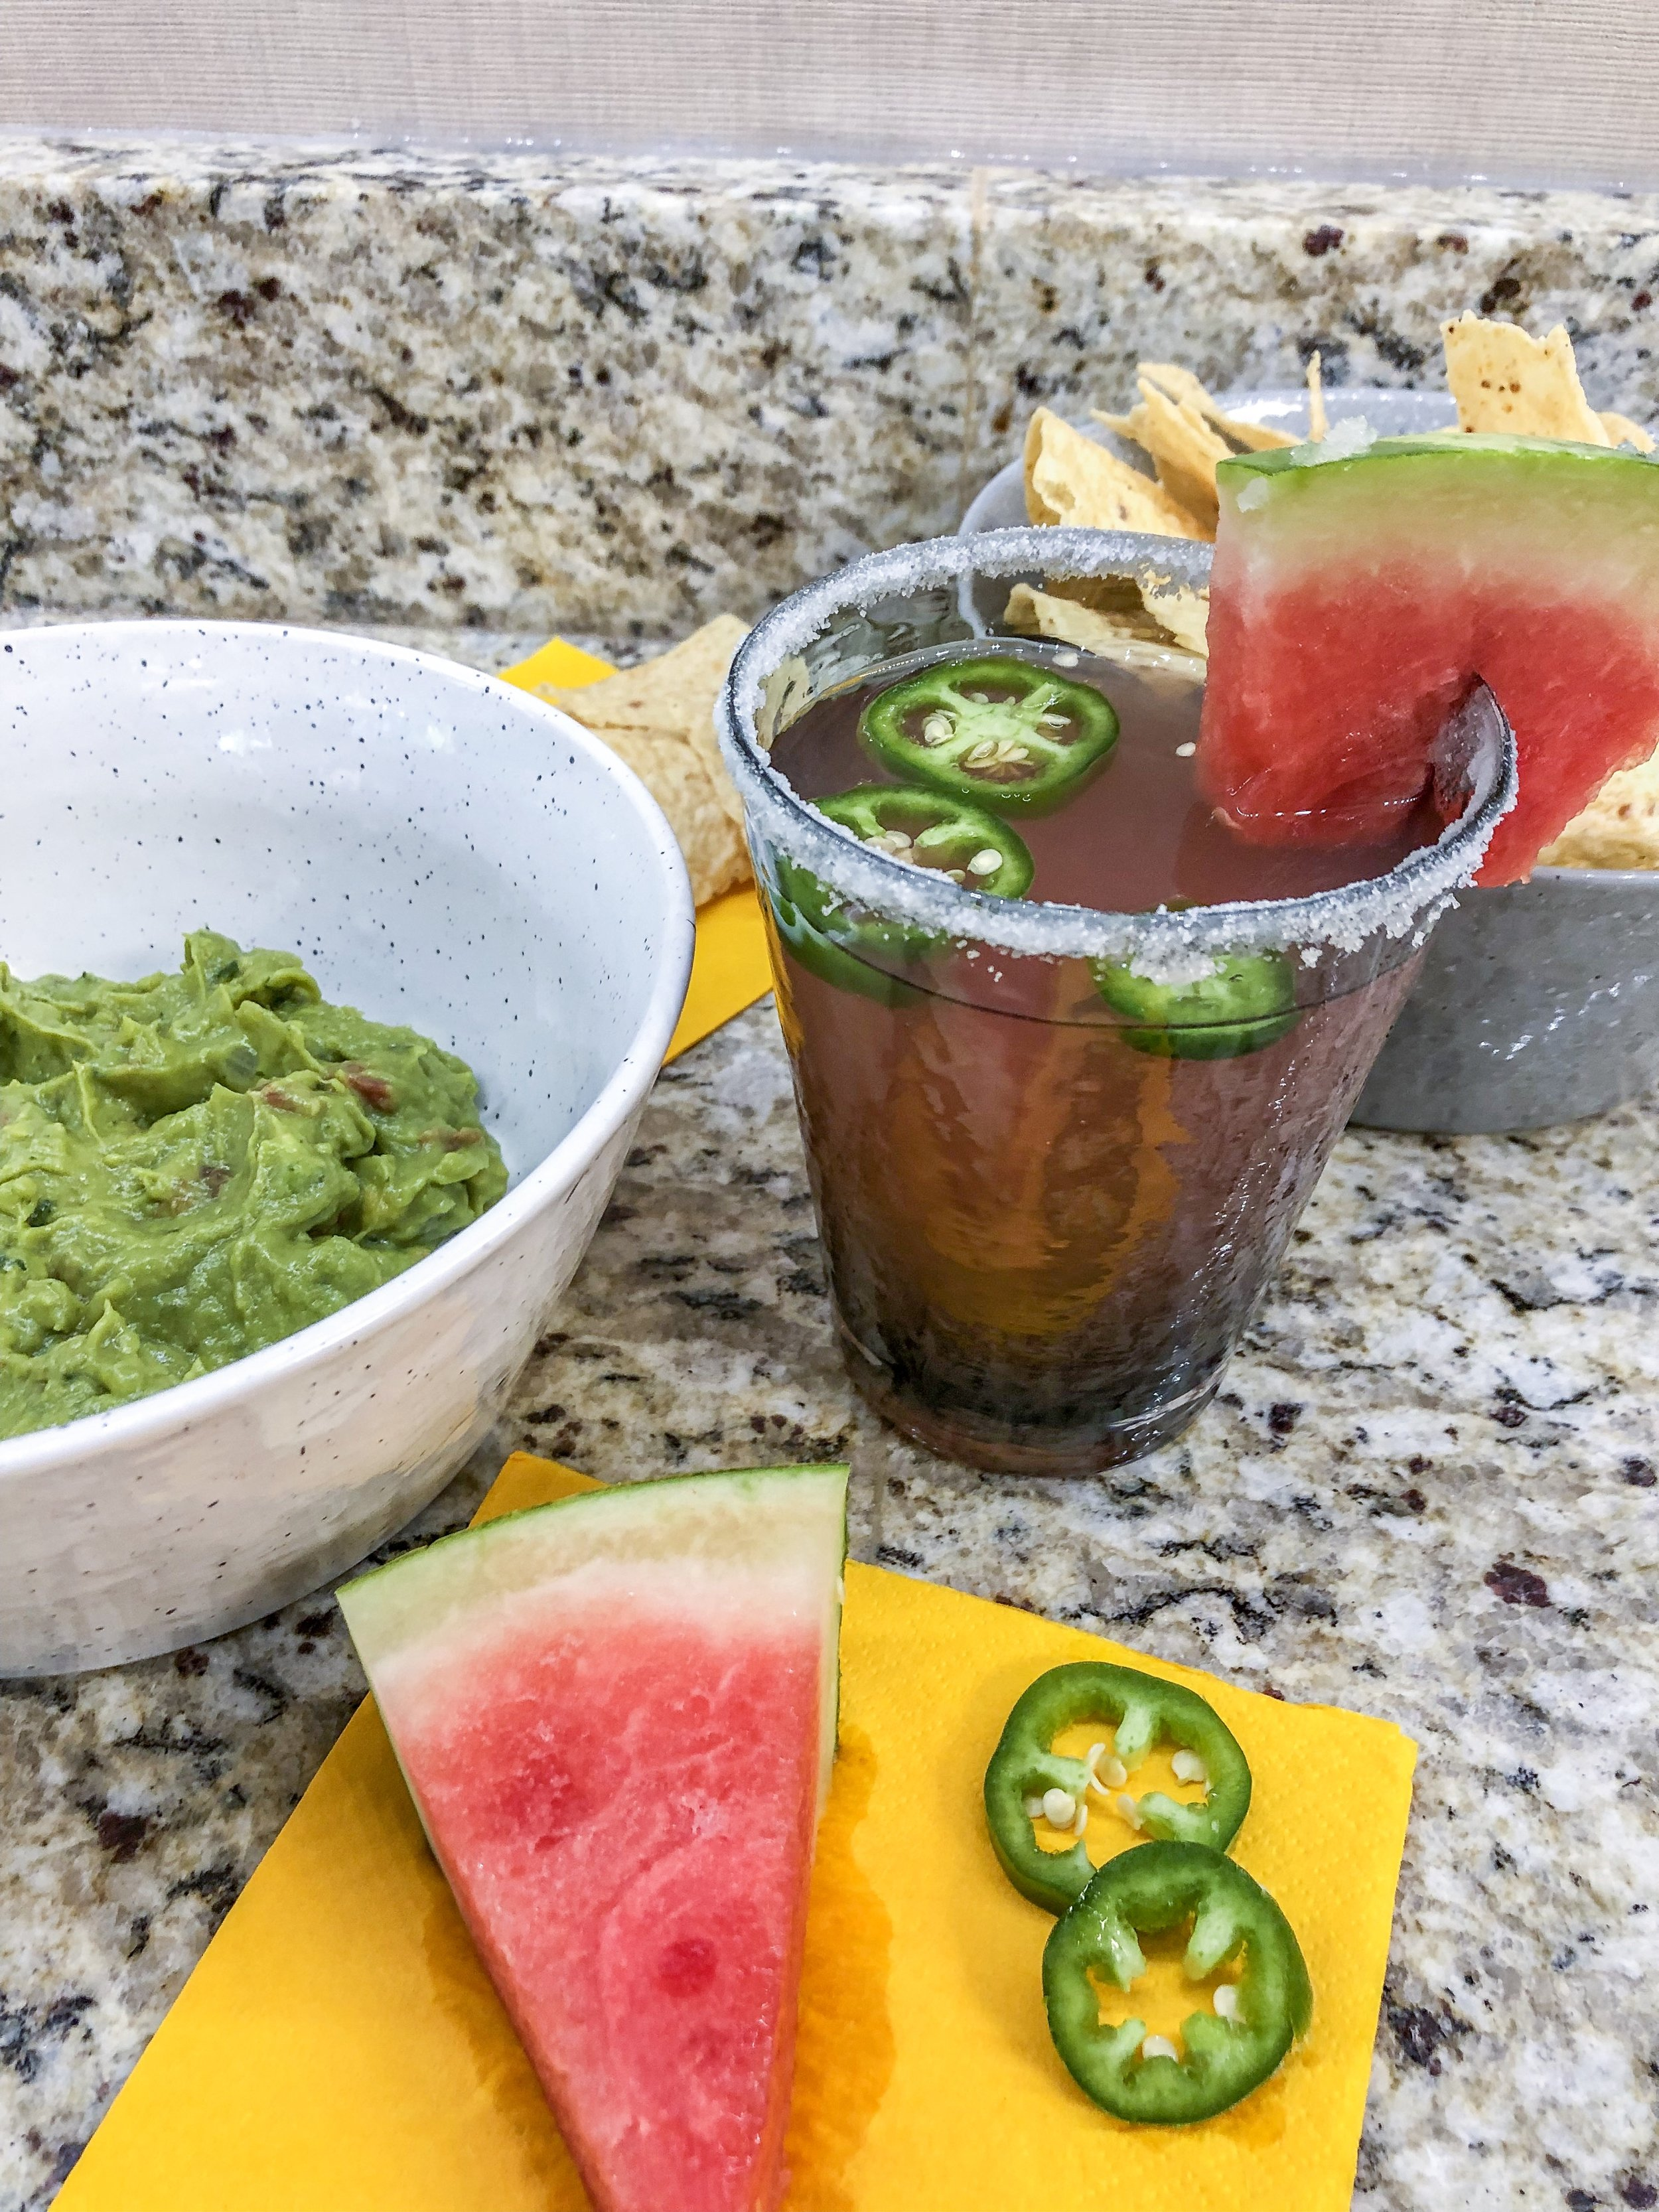 Kirkland's - Mouthwatering Margaritas for Your Next Taco Tuesday